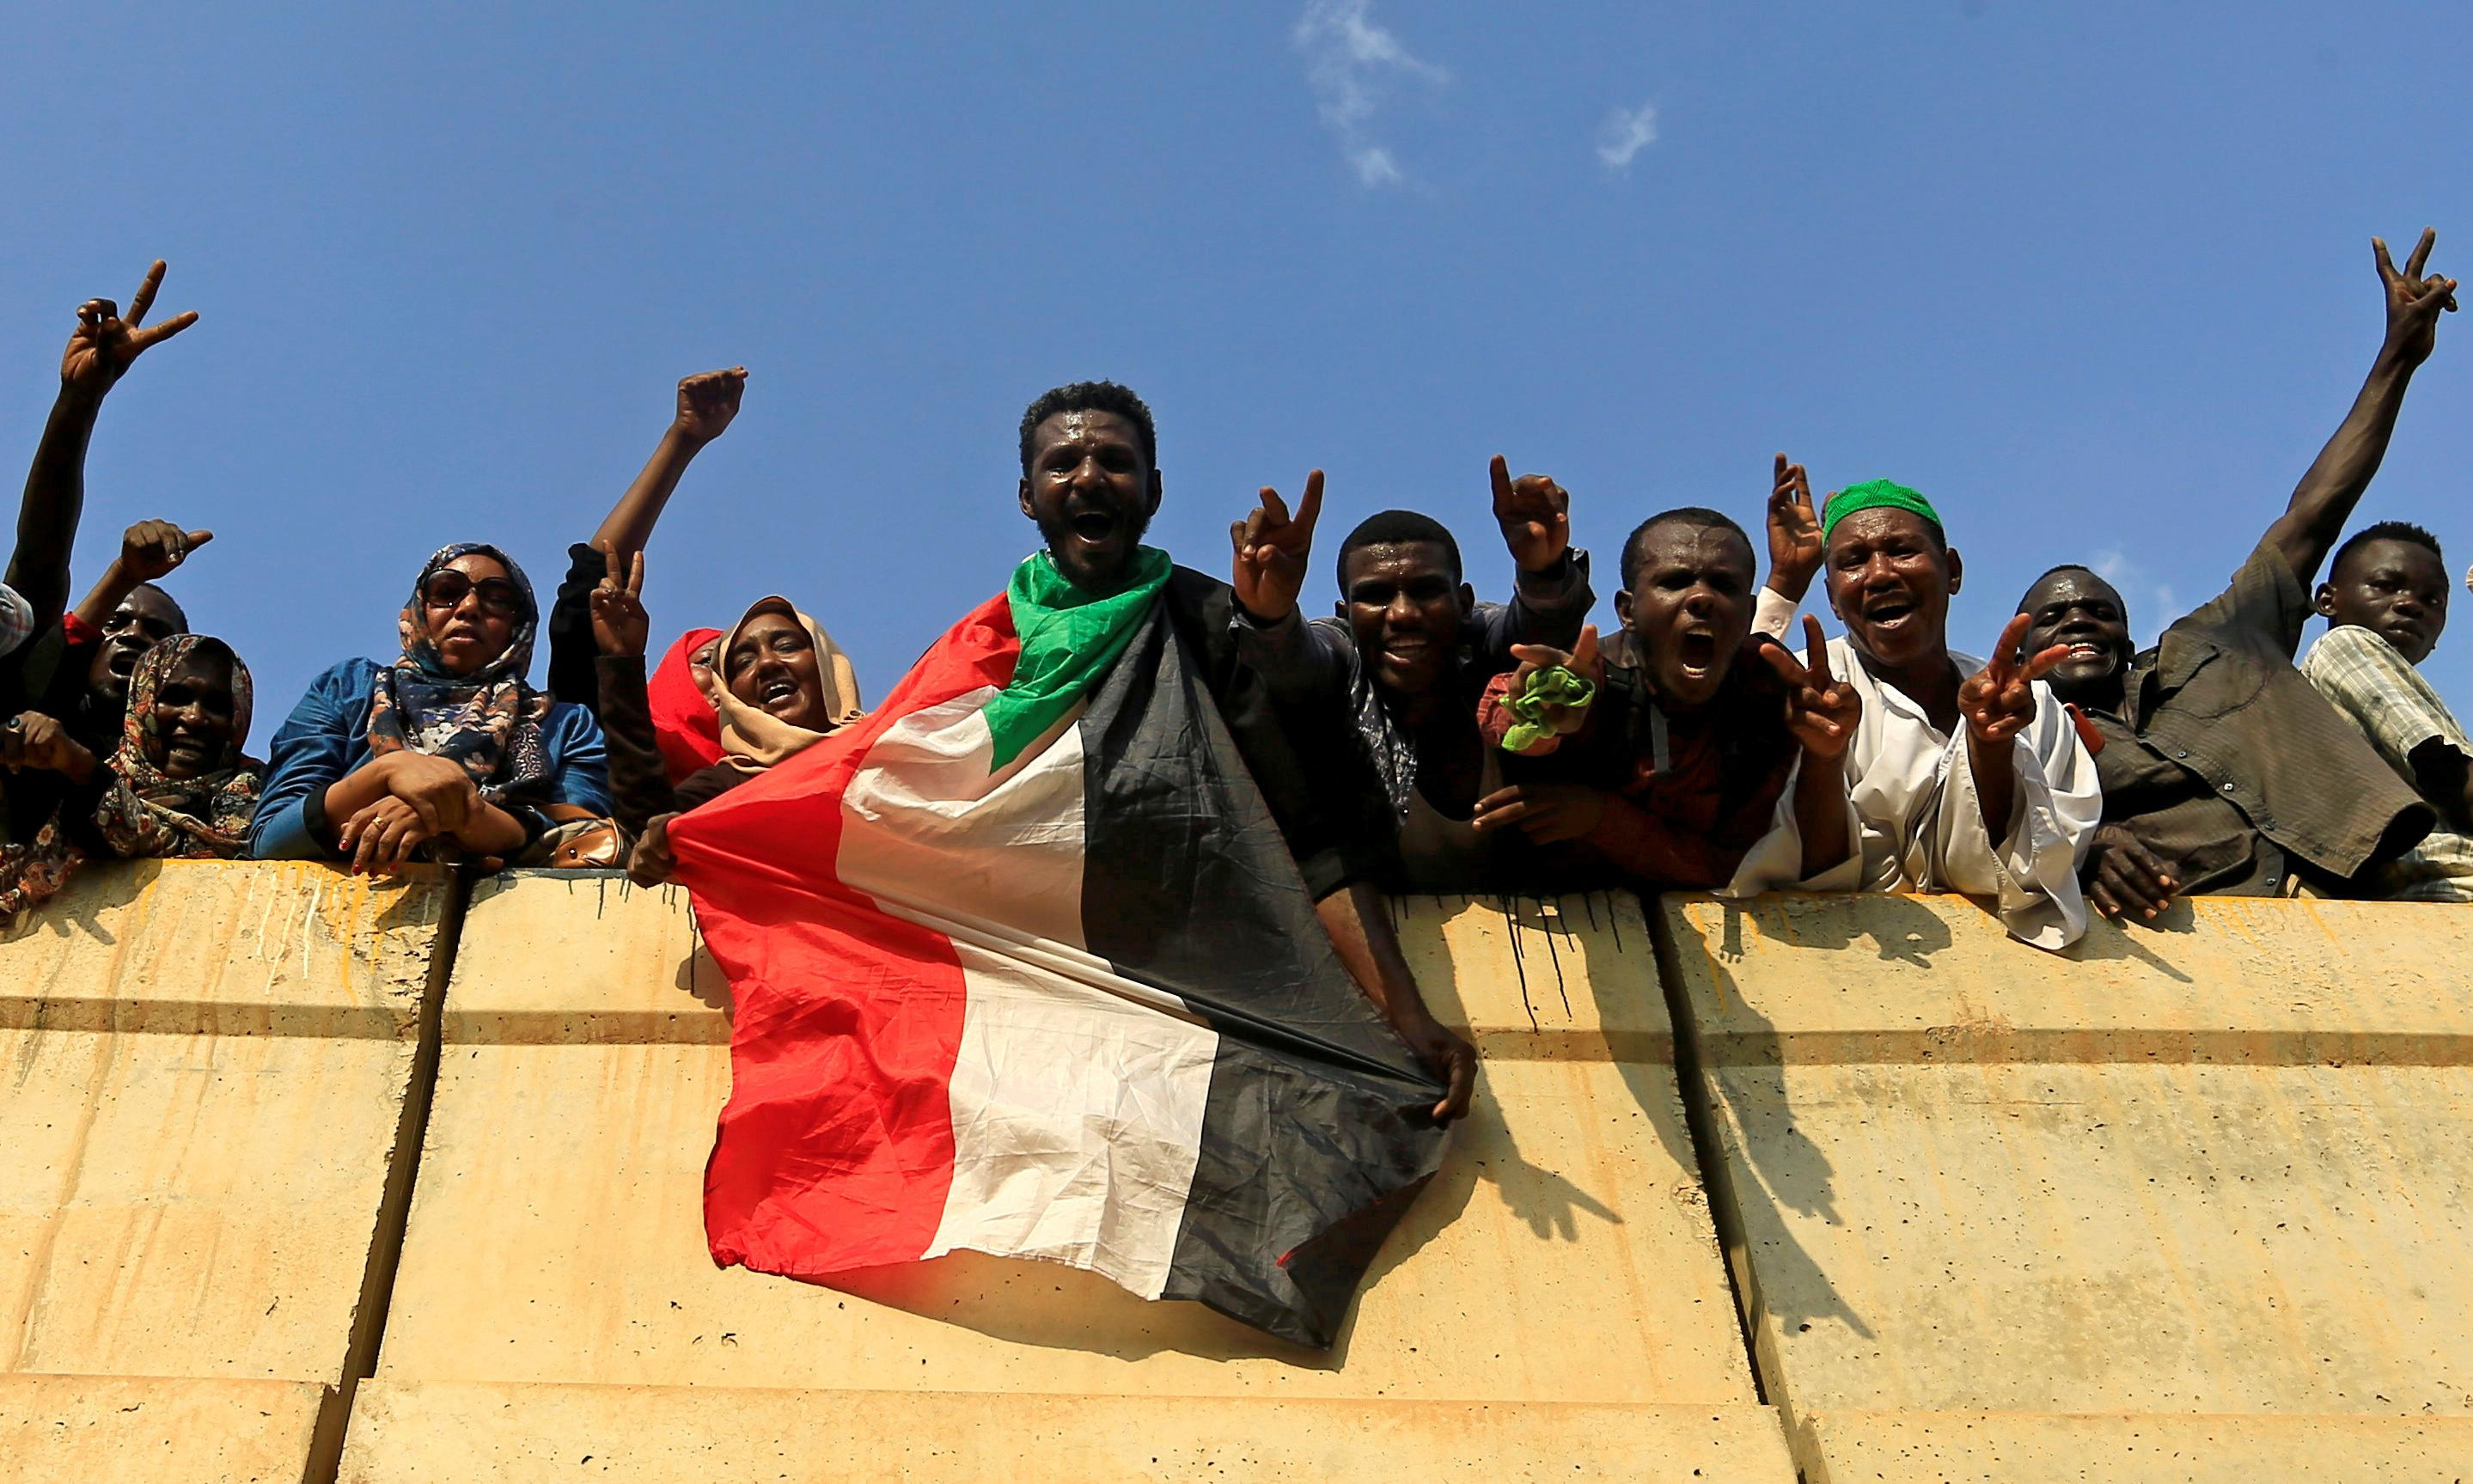 Deposed Sudan president to face corruption charges in court